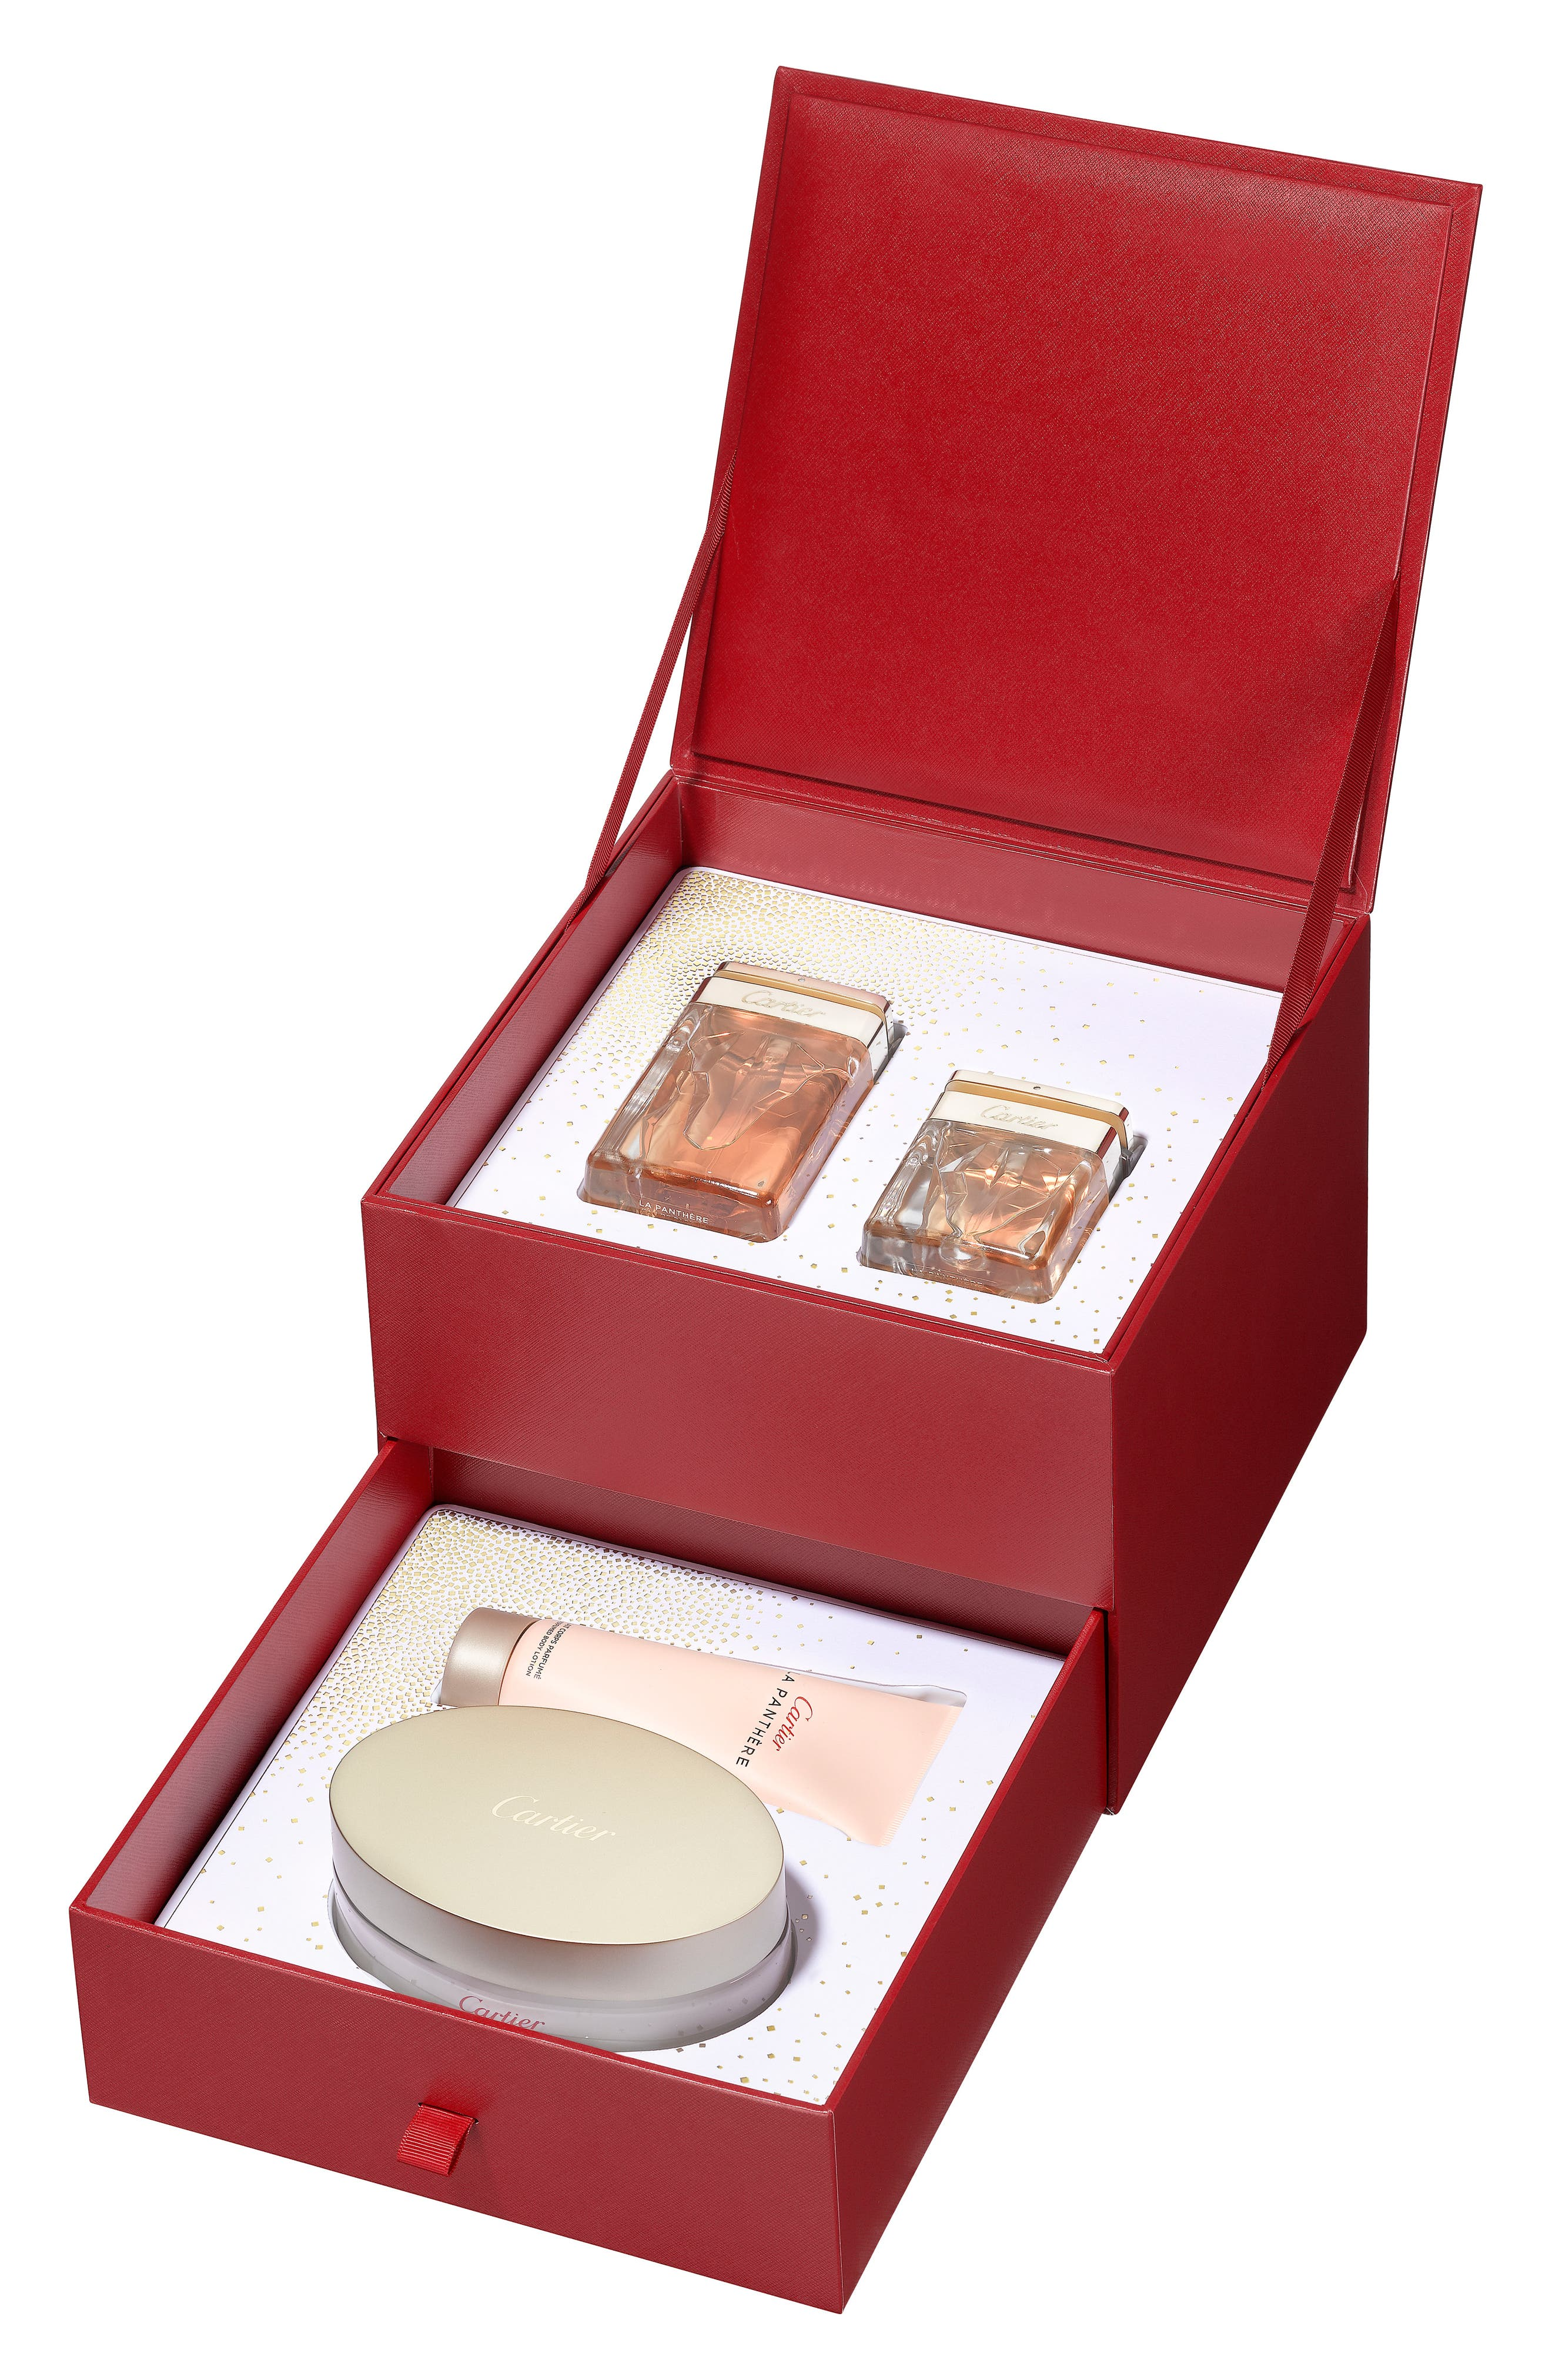 Main Image - Cartier La Panthère Eau de Parfum Prestige Set ($365 Value)